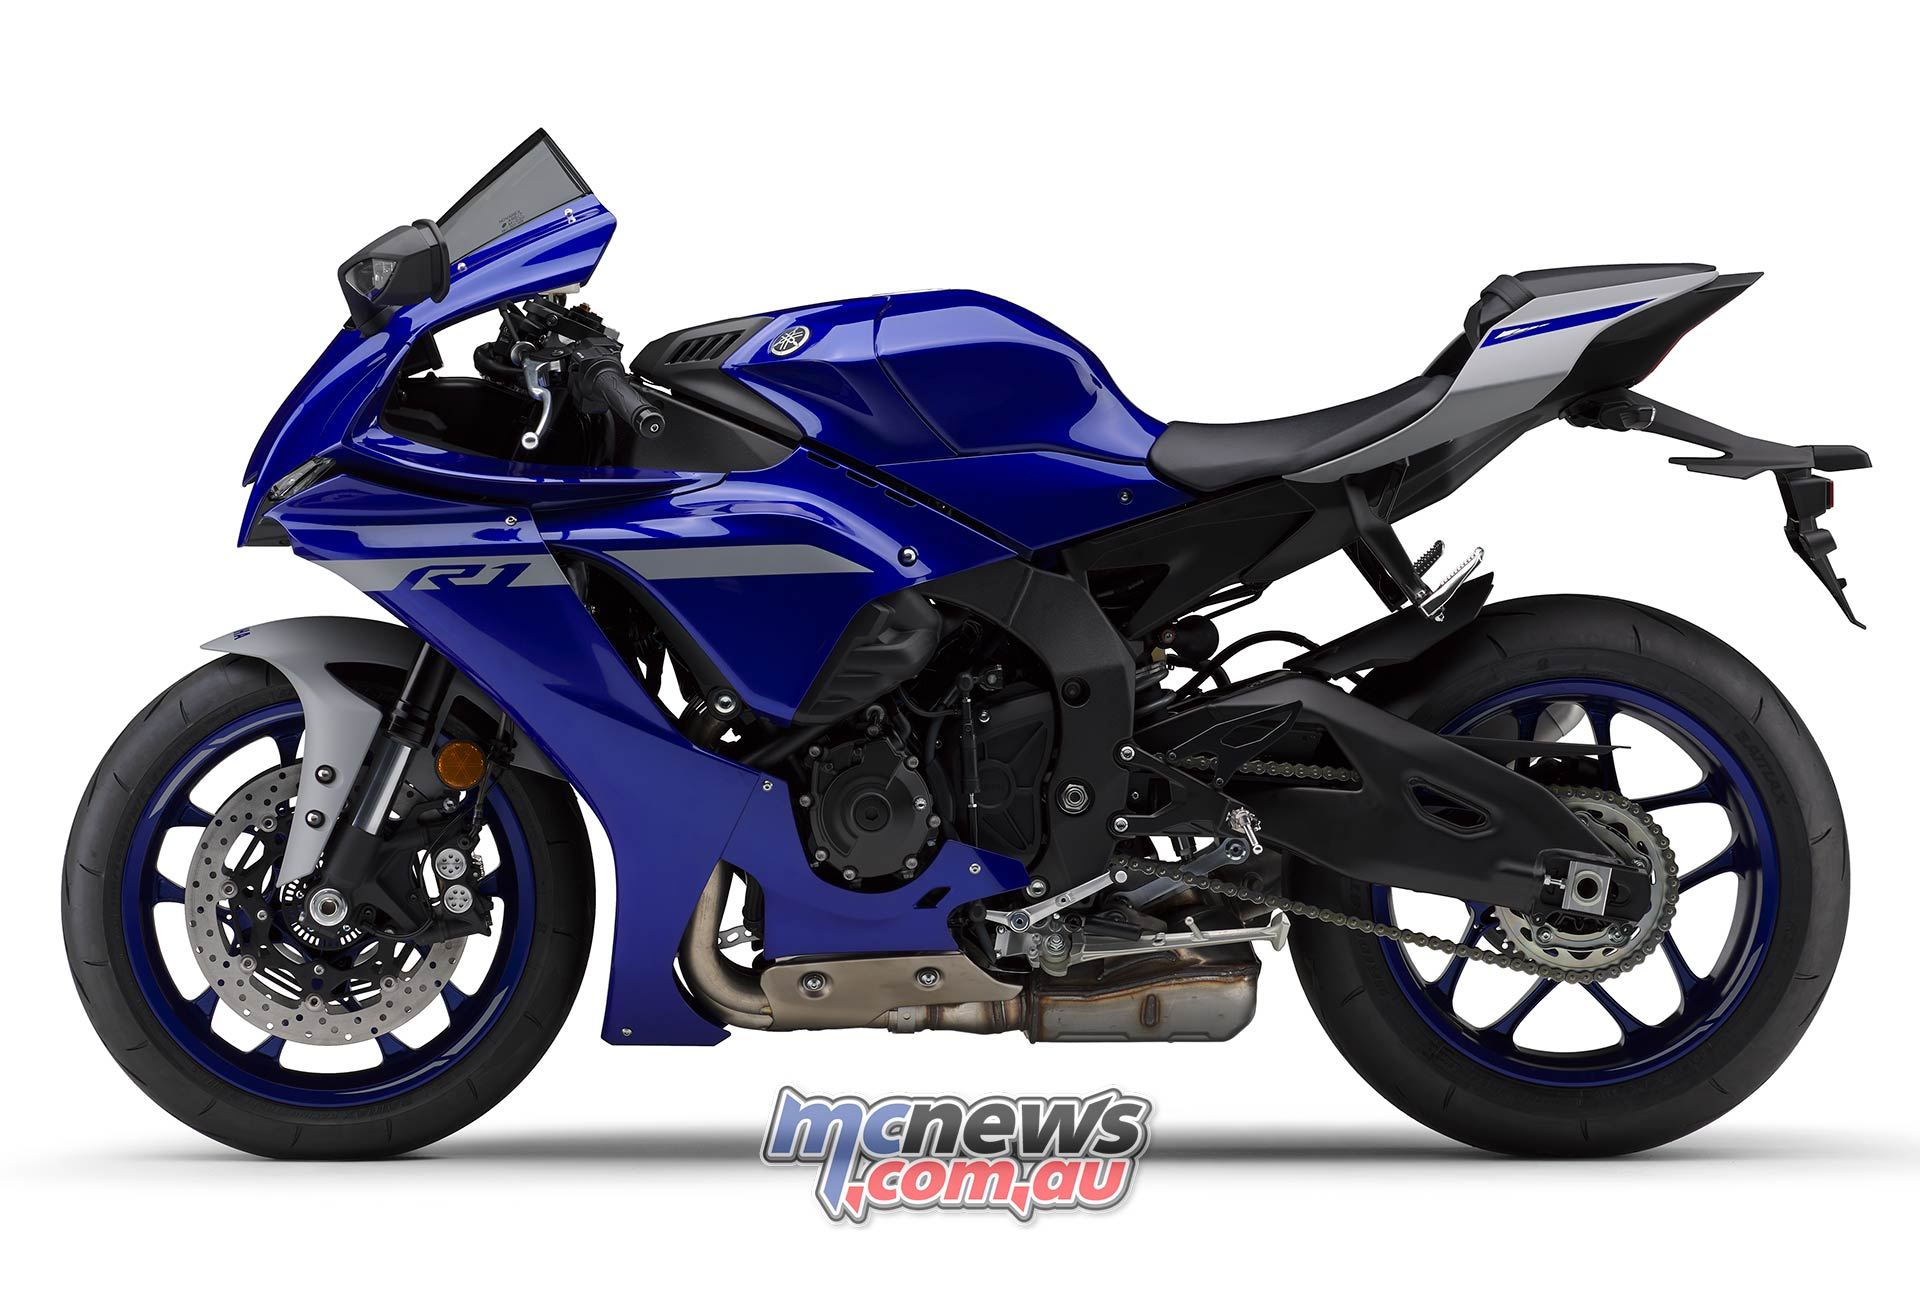 2020 Yamaha Yzf R1 And 2020 Yzf R1m Here Now Mcnews Com Au